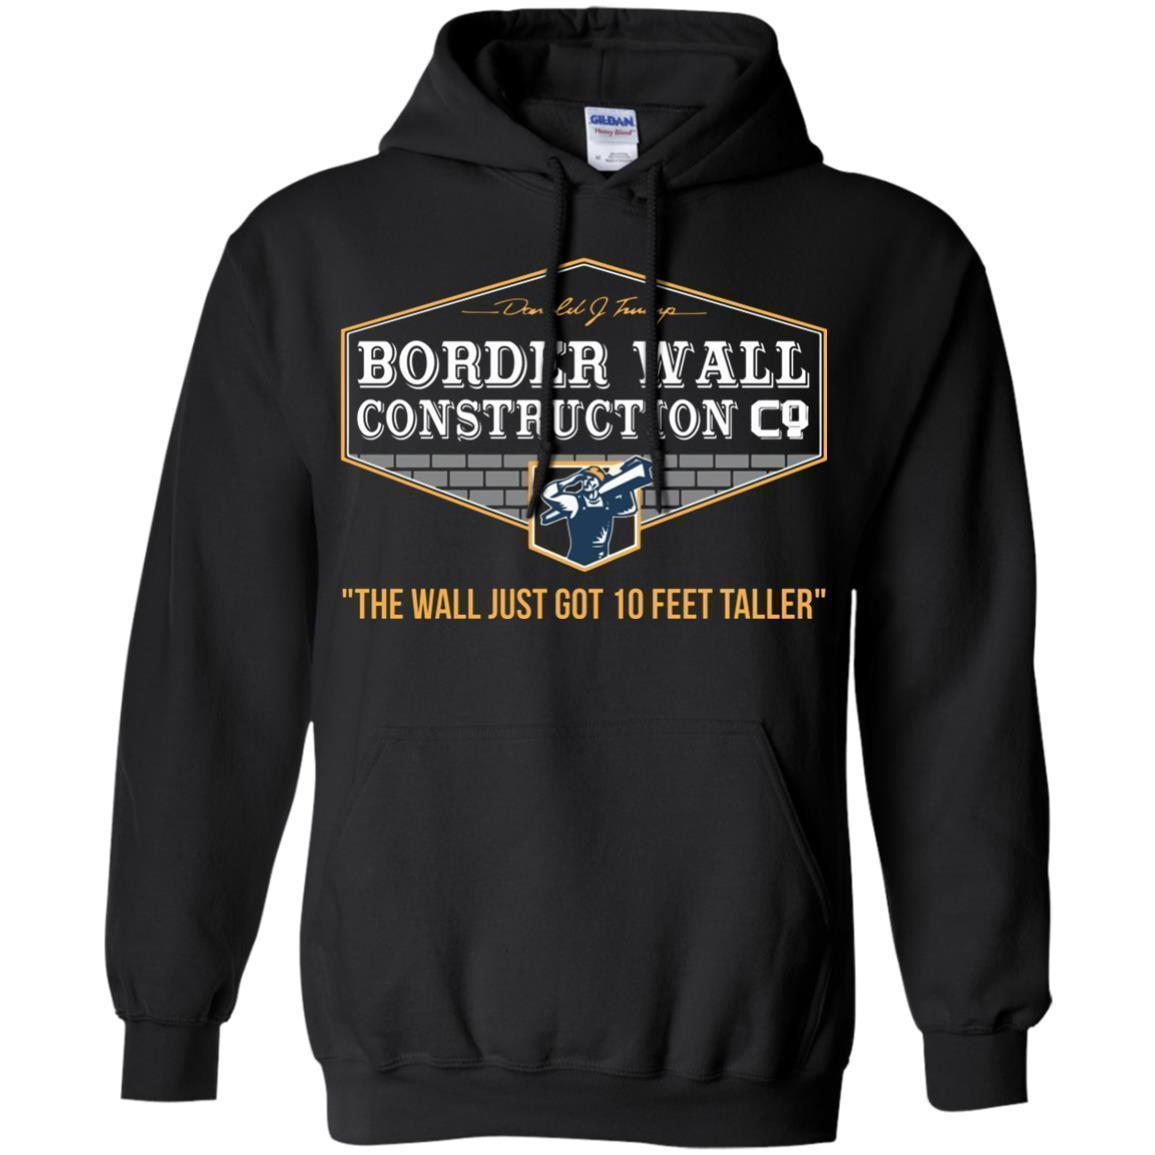 Border Wall Construction Company Hoodie